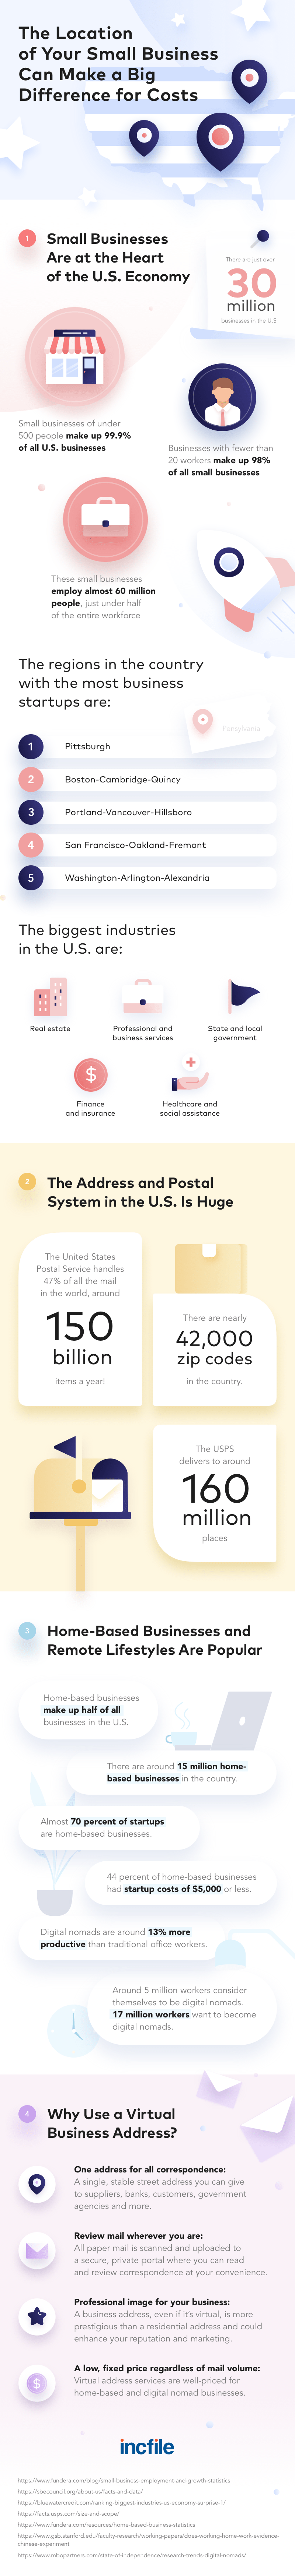 virtual-address-for-small-business-infographic-plaza